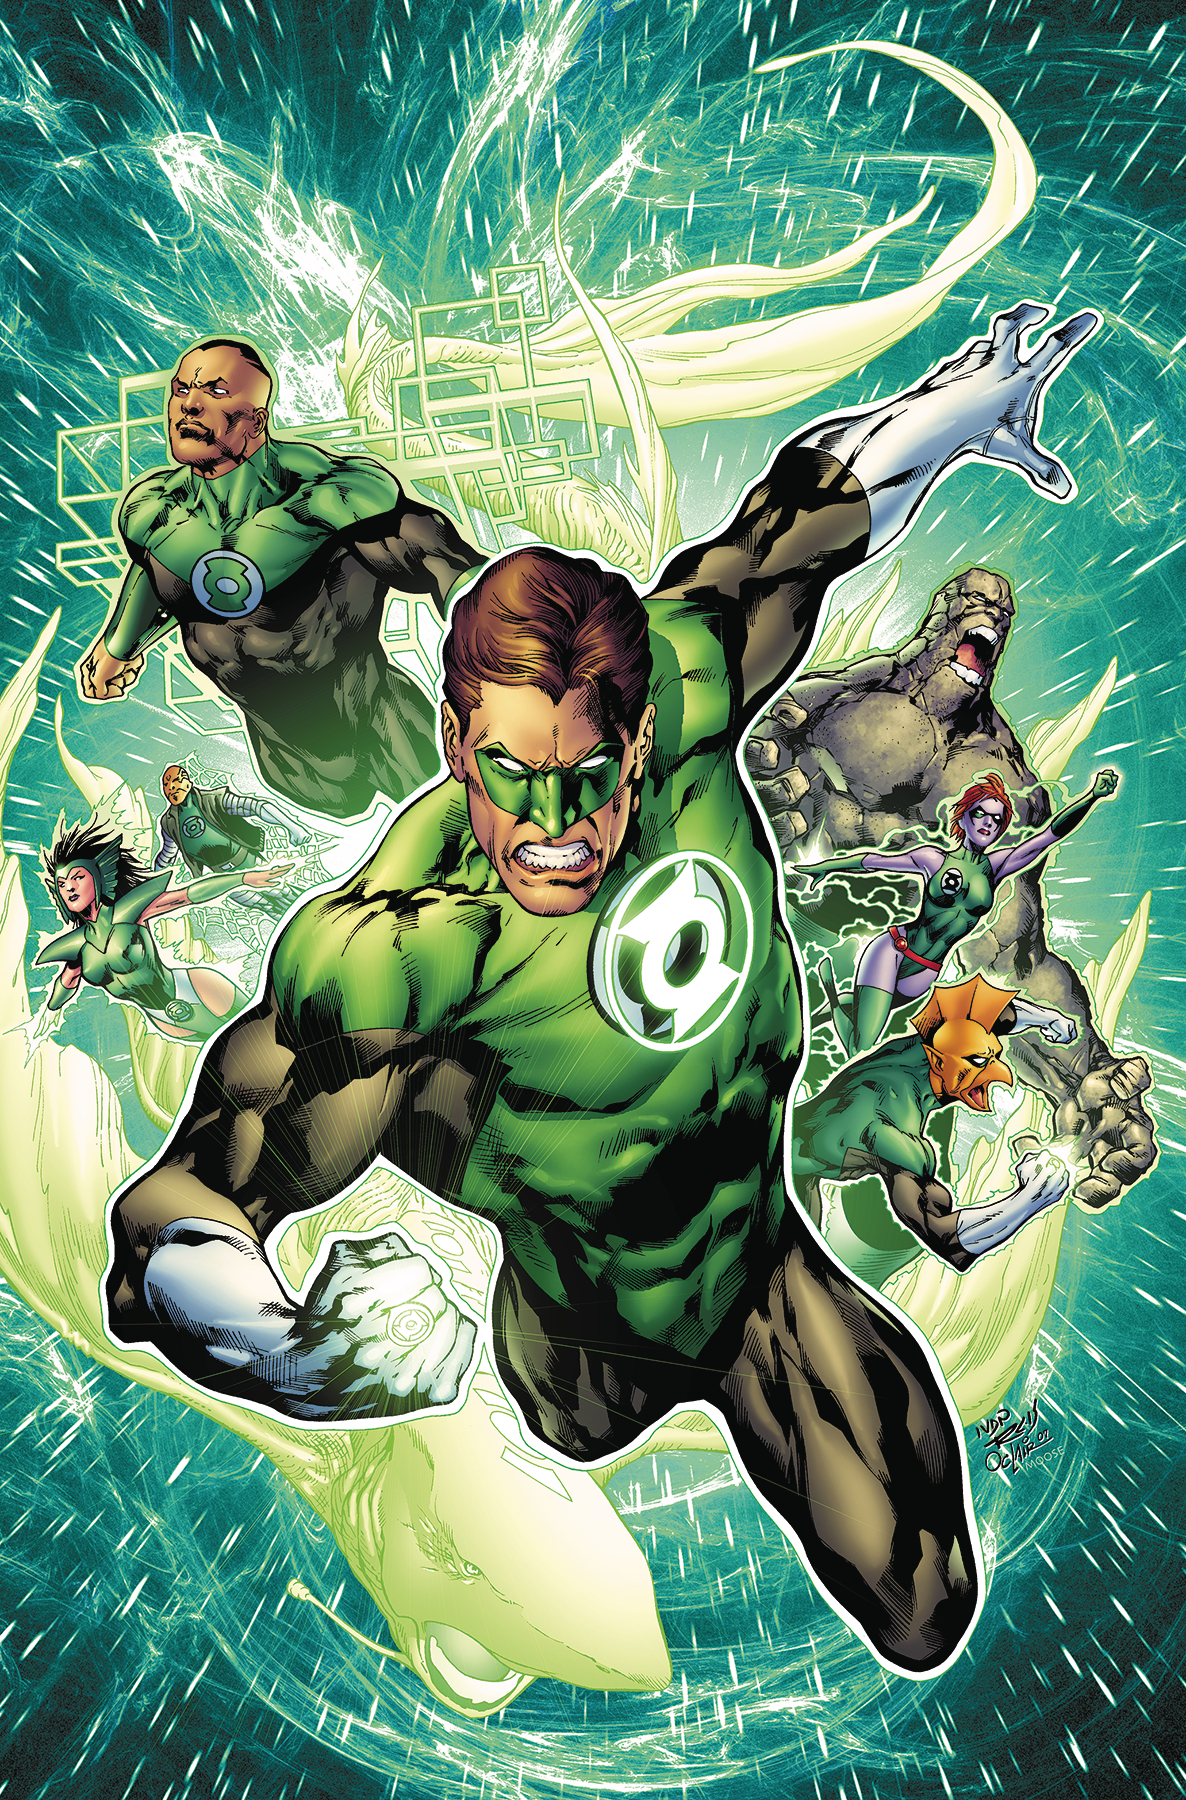 GREEN LANTERN BY GEOFF JOHNS TP BOOK 03 [#18-25+]